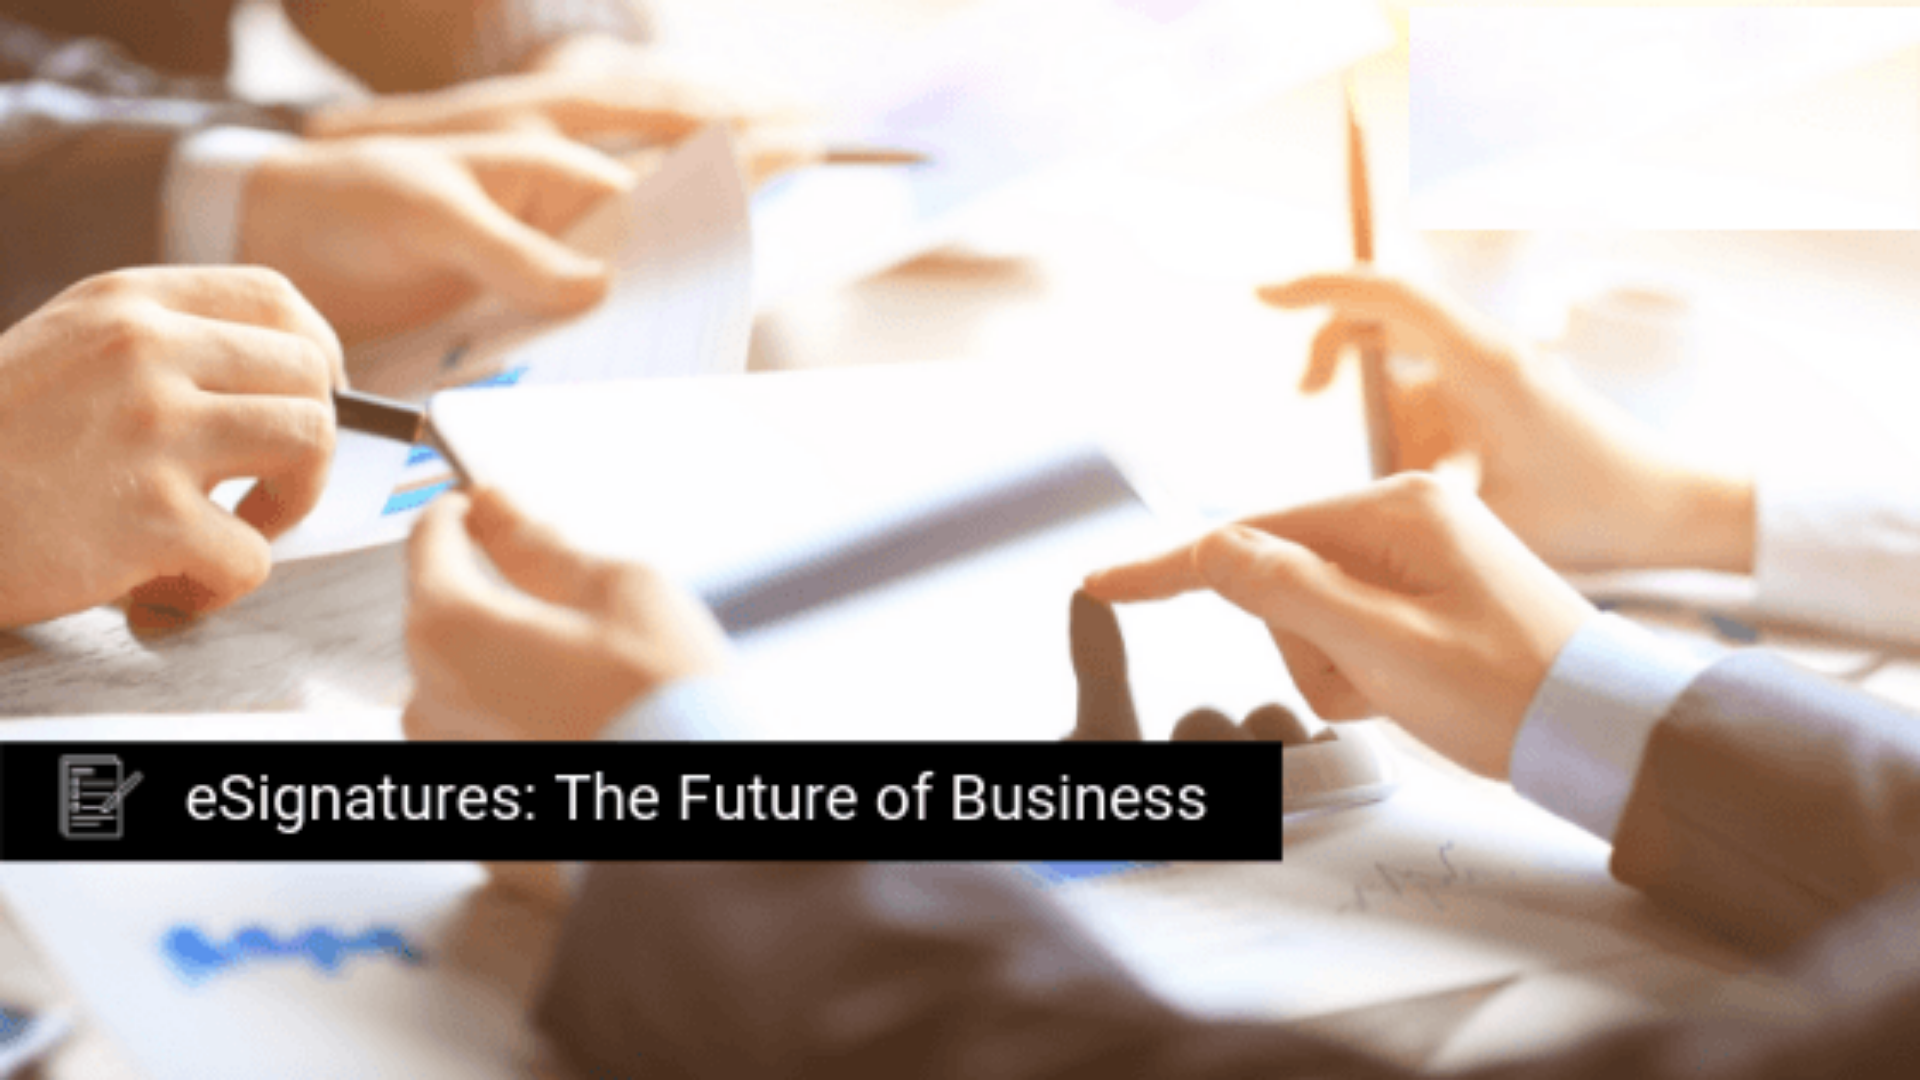 eSignatures - The Future of Business